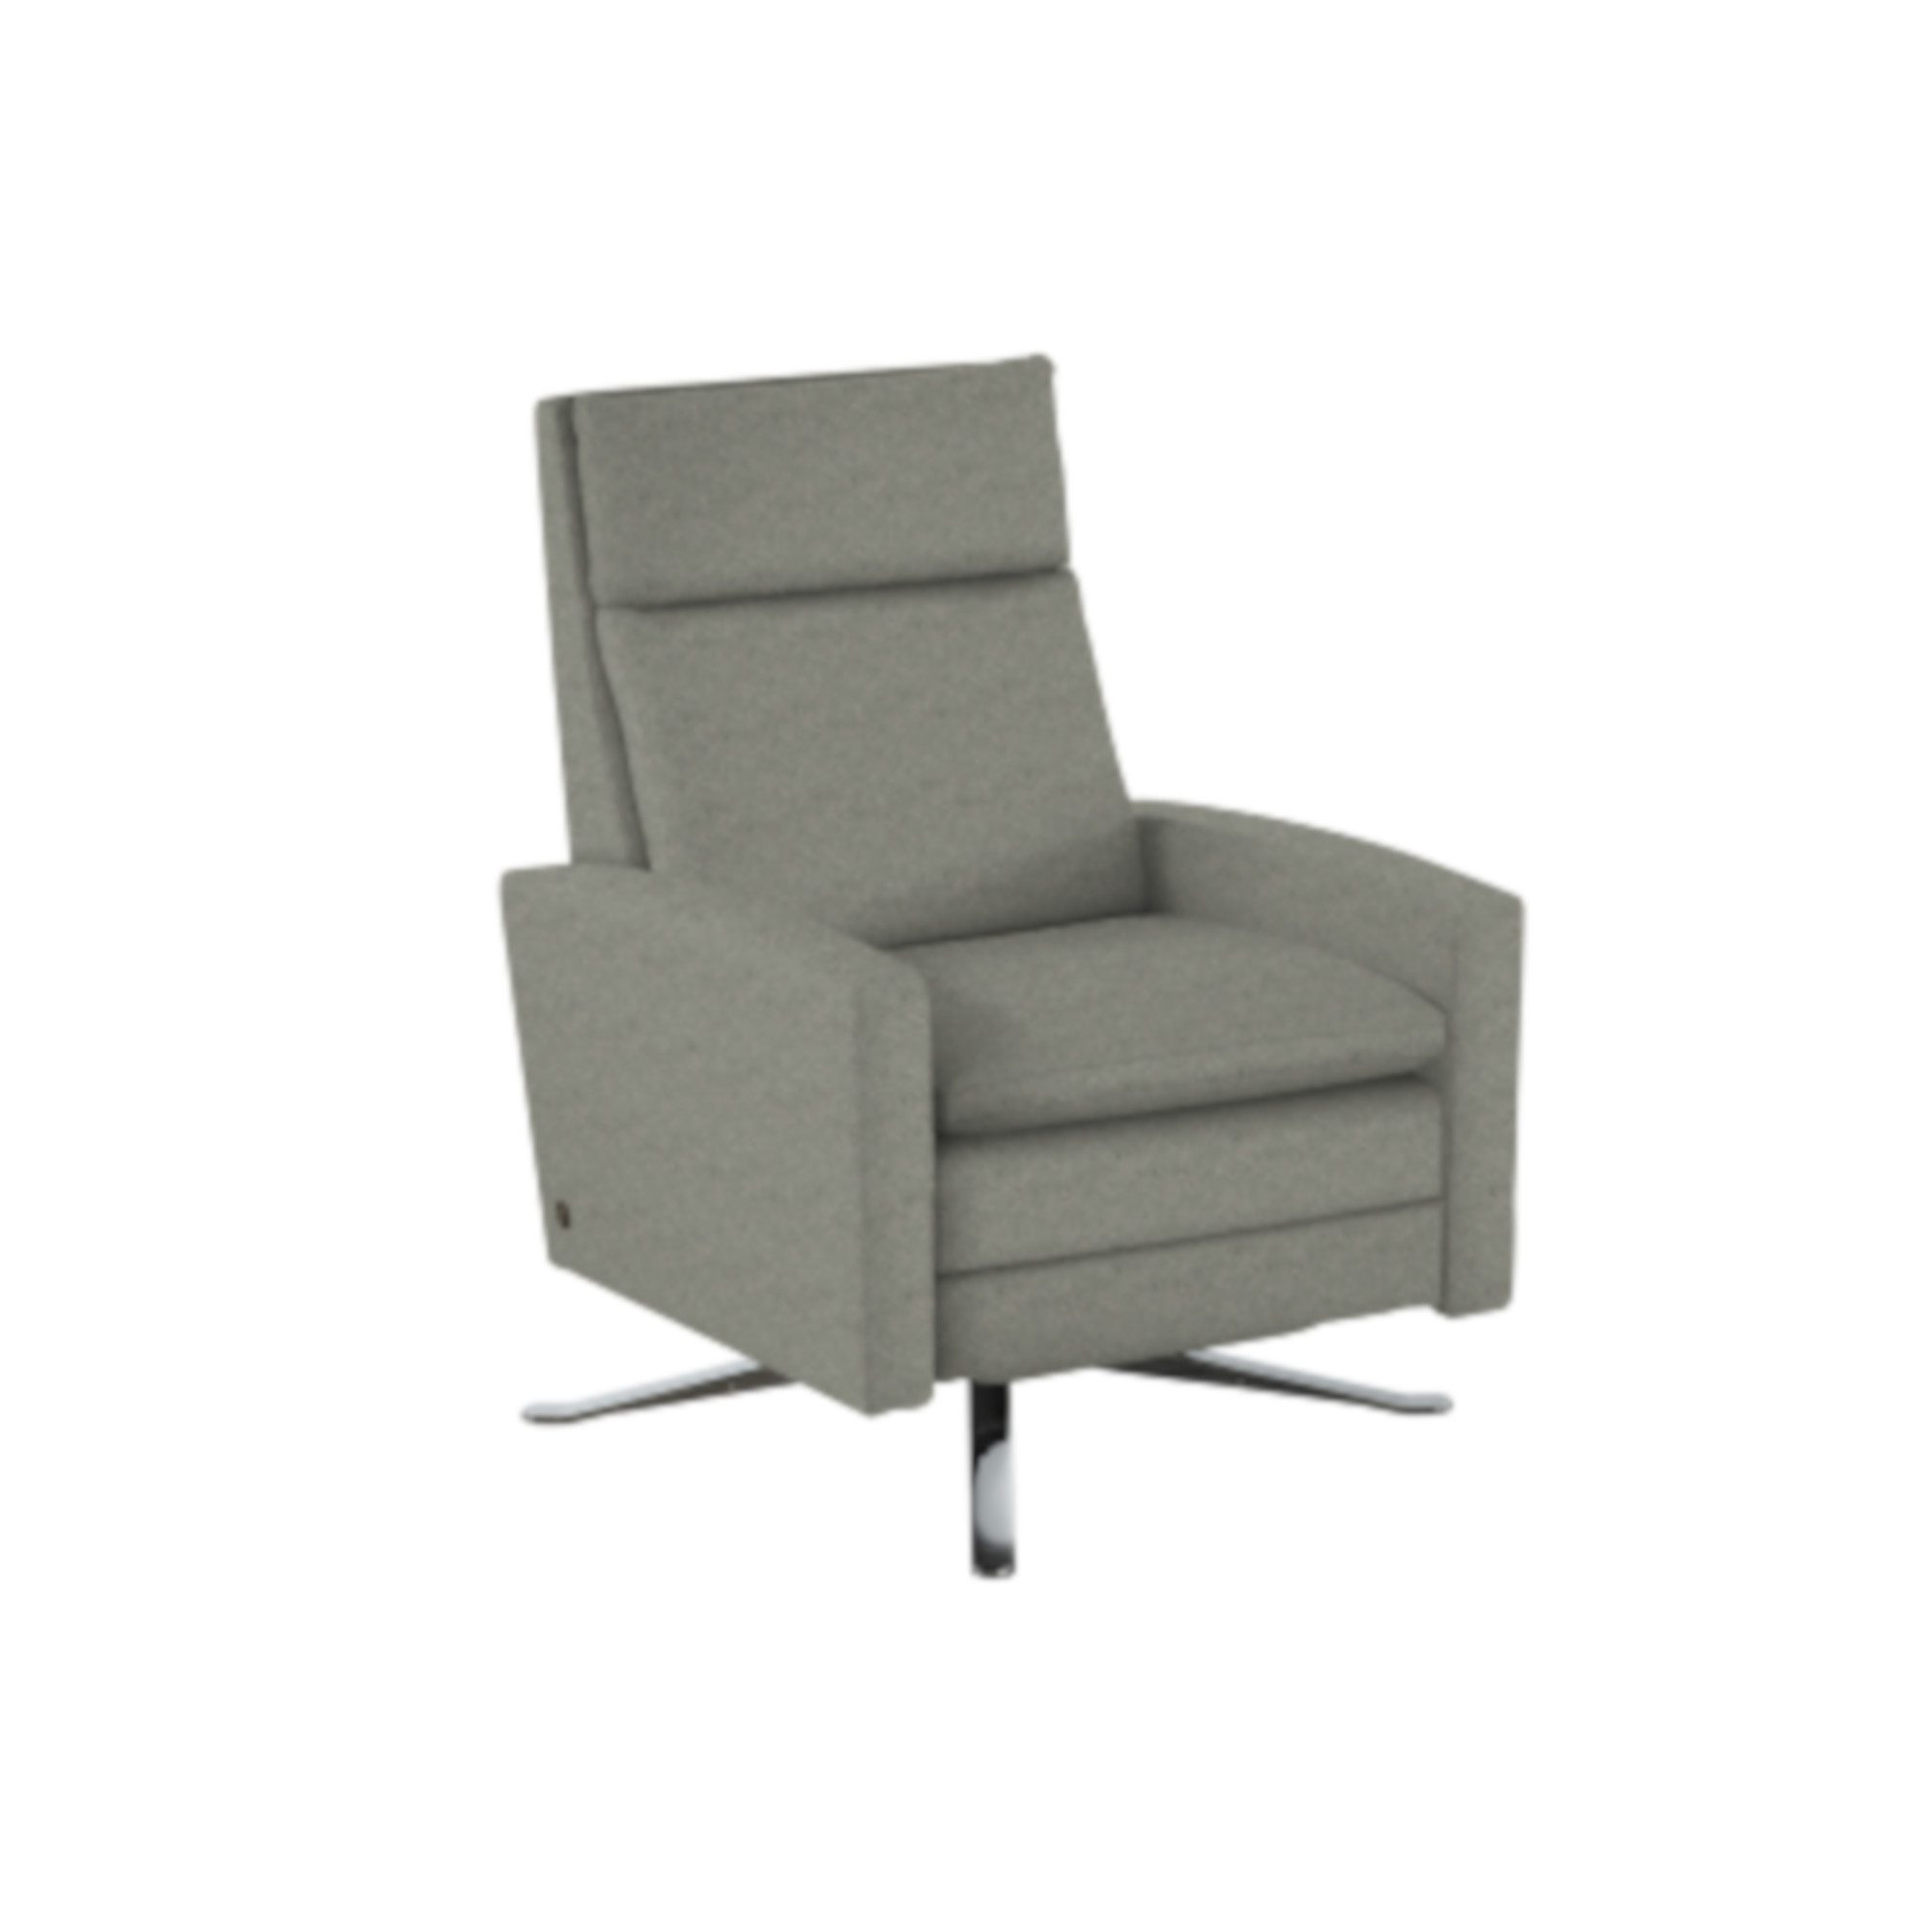 swivel chair inventor monogrammed toddler simon re invented recliner  rockridge furniture and design